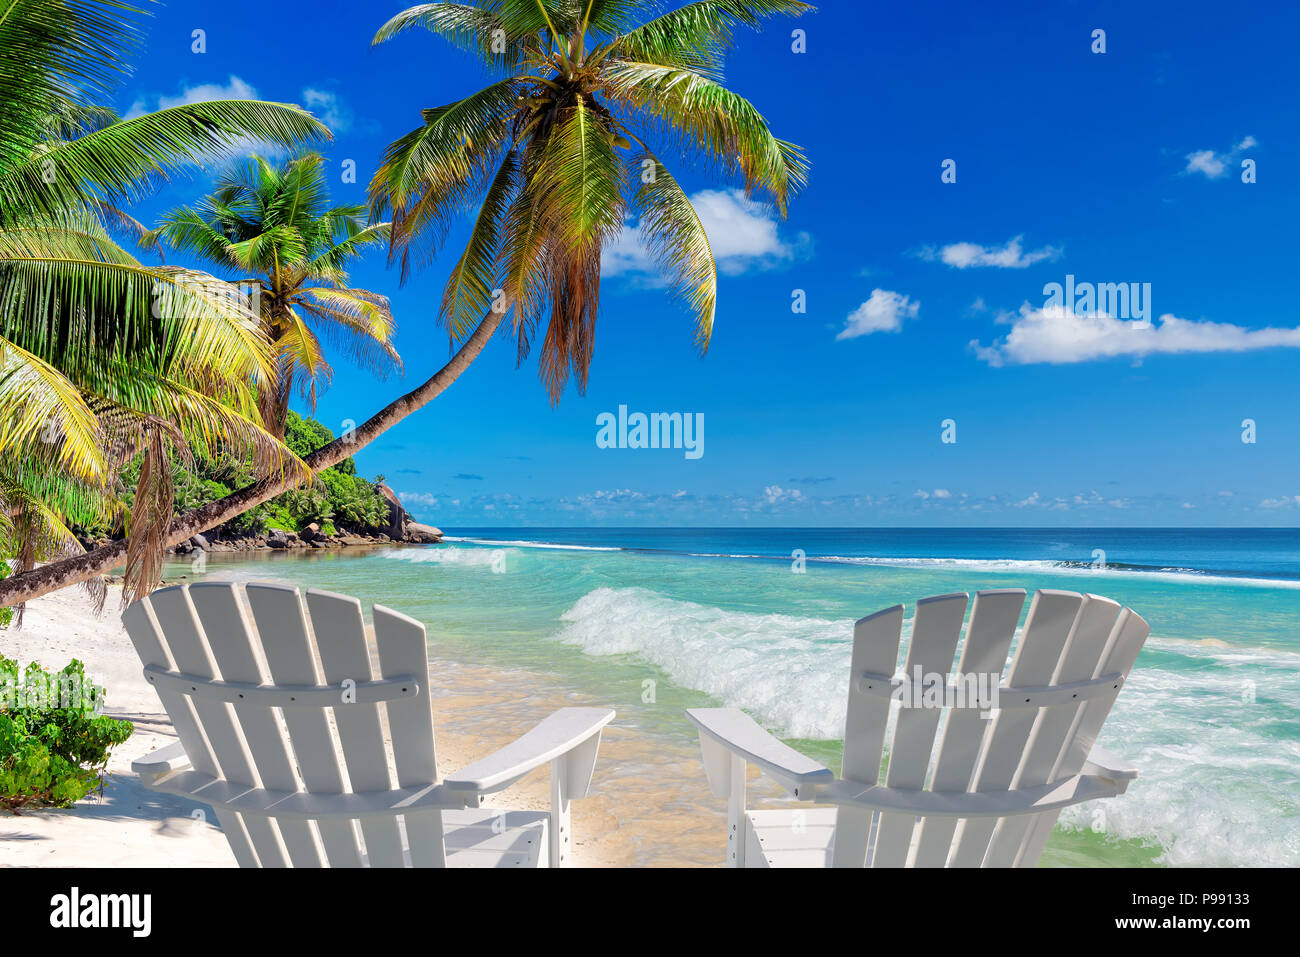 Beach chairs on sandy beach with palm and turquoise sea. - Stock Image